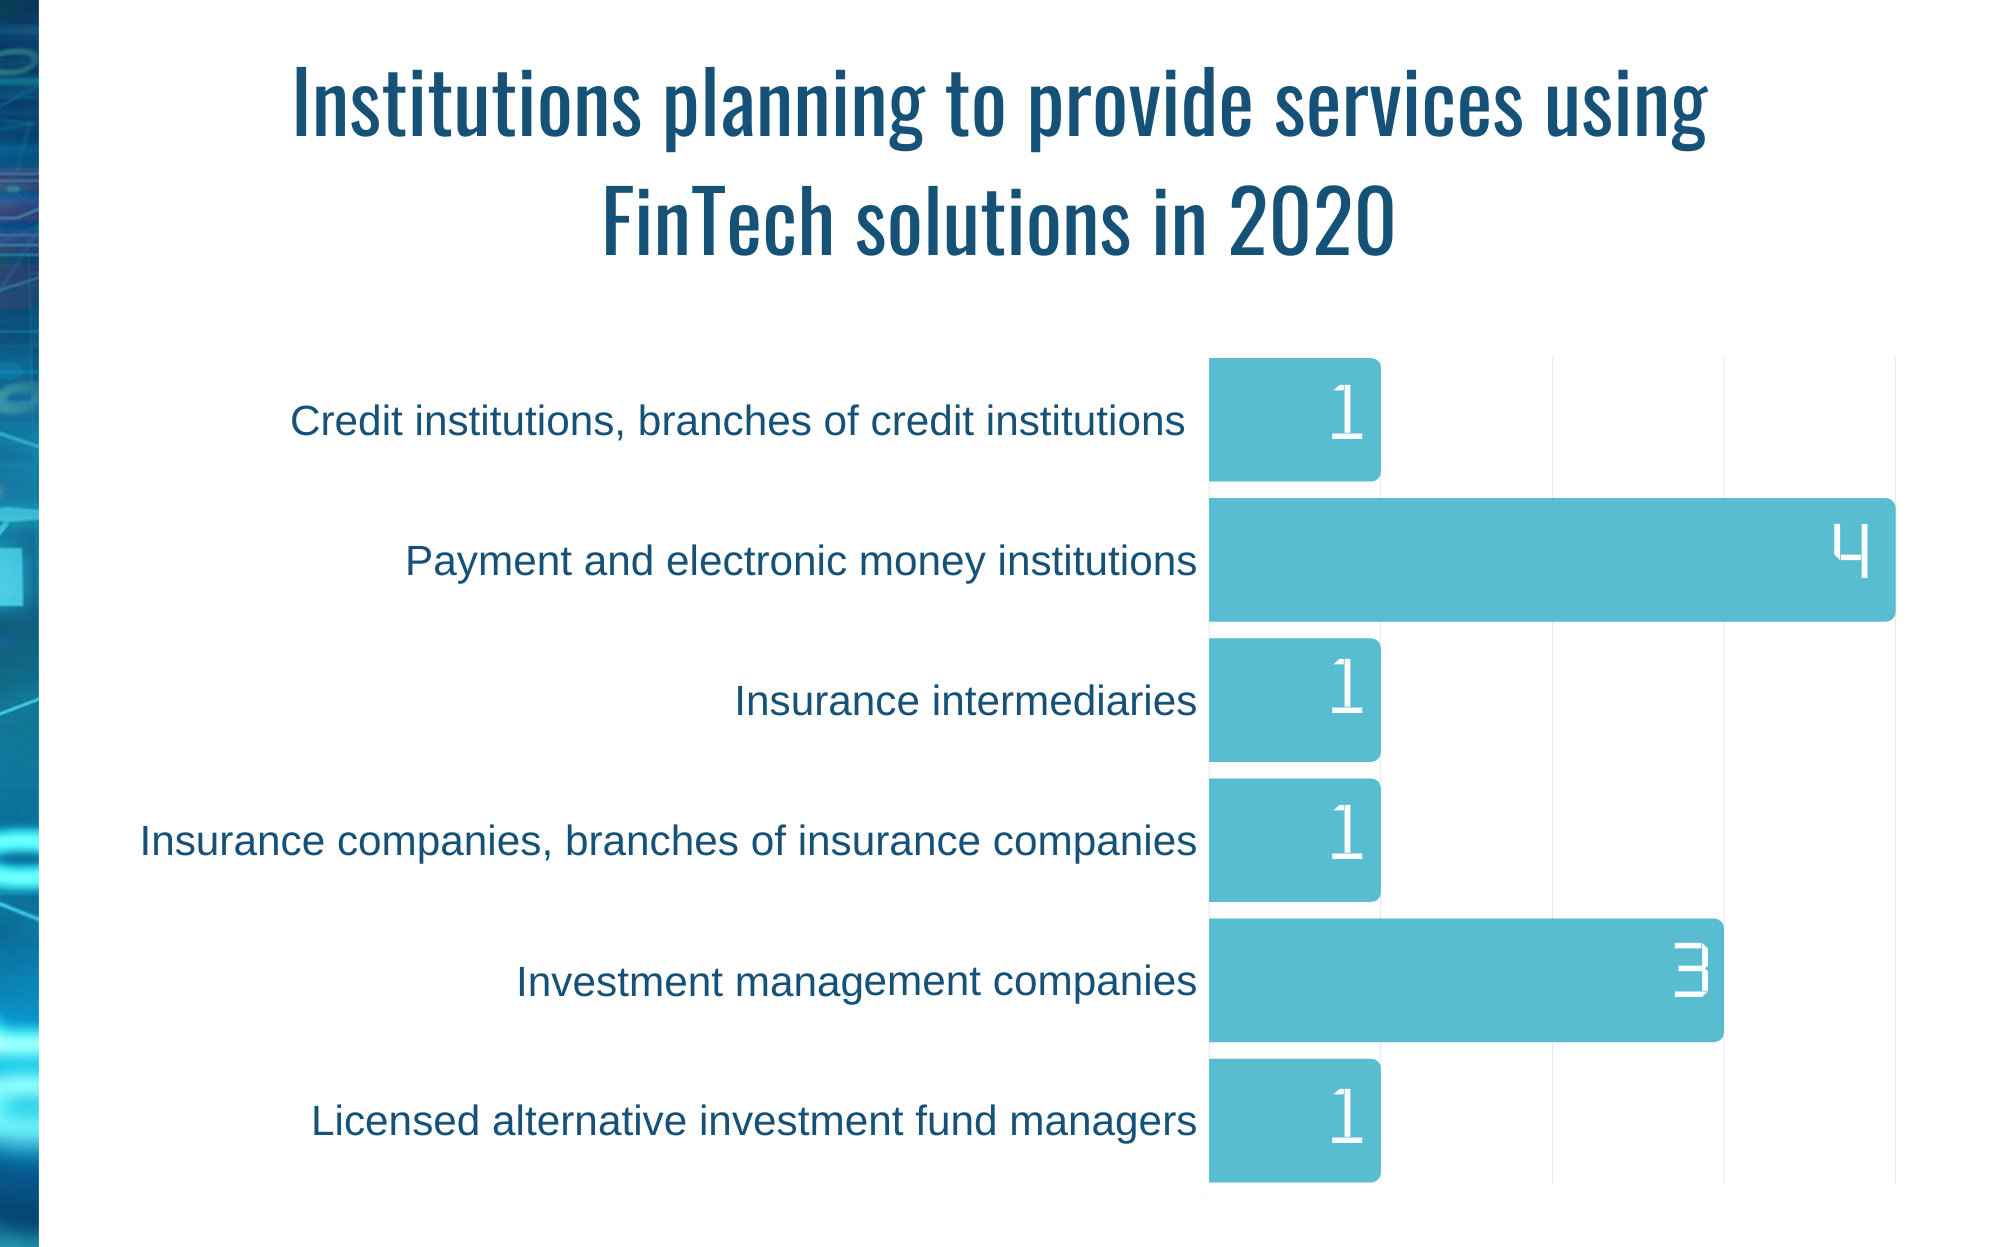 Institutions planning to provide services using FinTech solutions in 2020